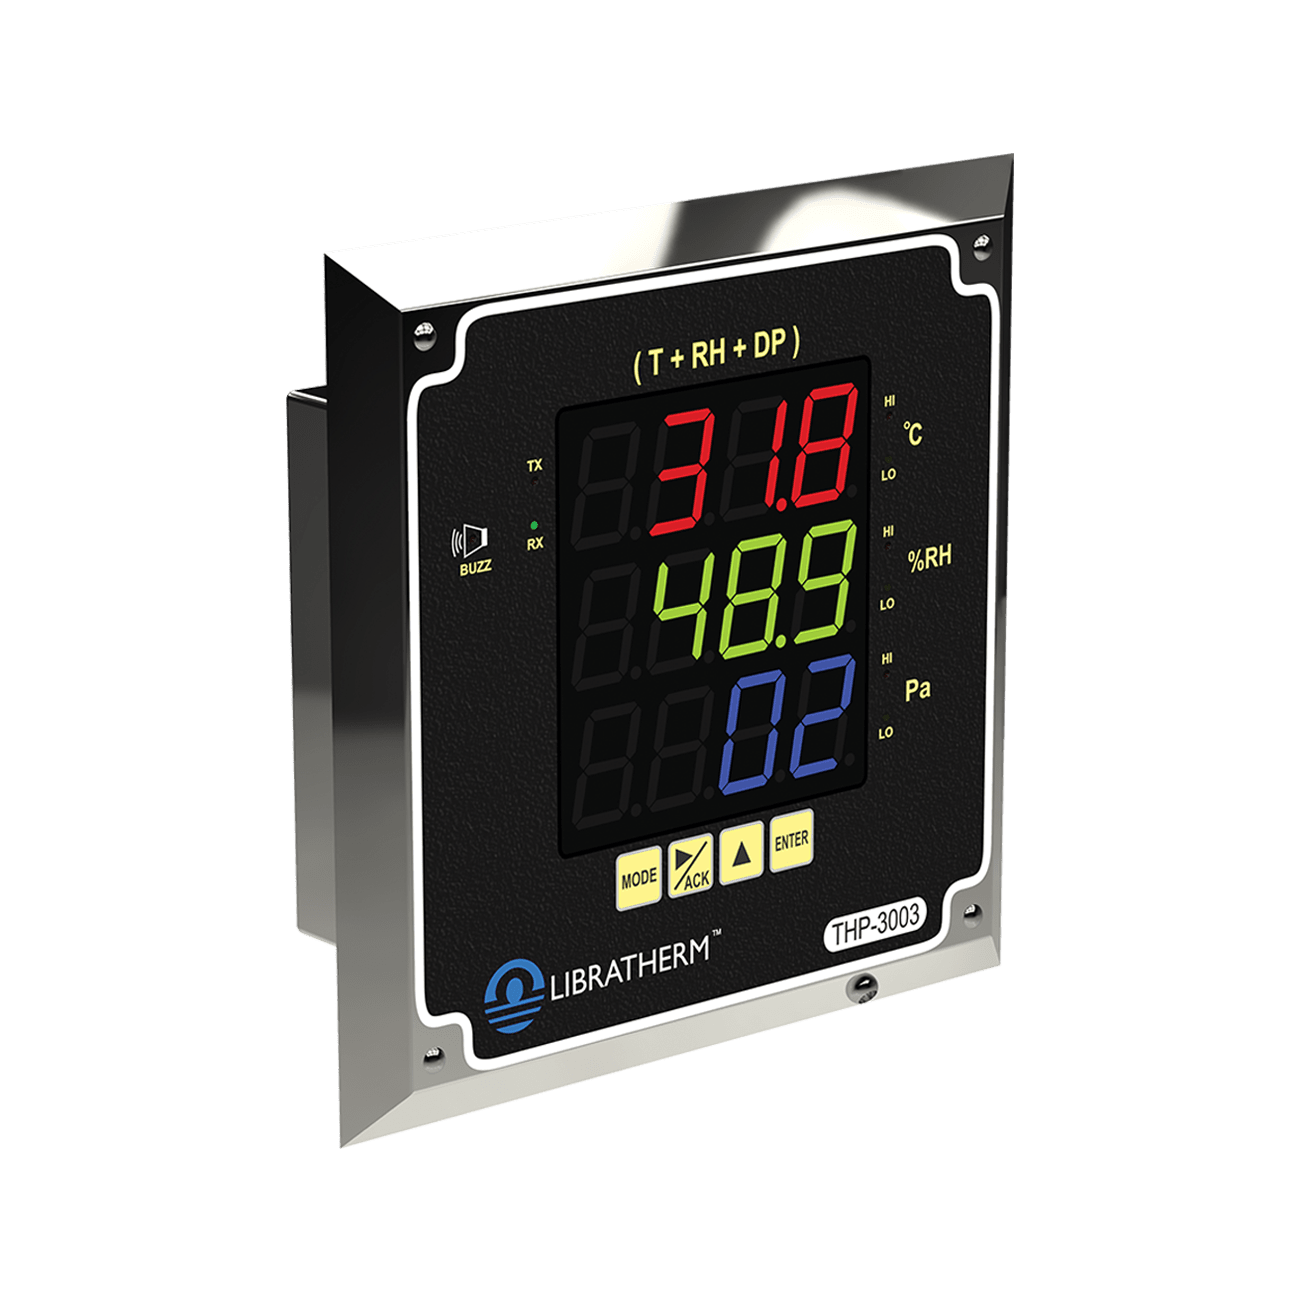 clean-room-monitor-and-real-time-data-logger-thp-3003-right